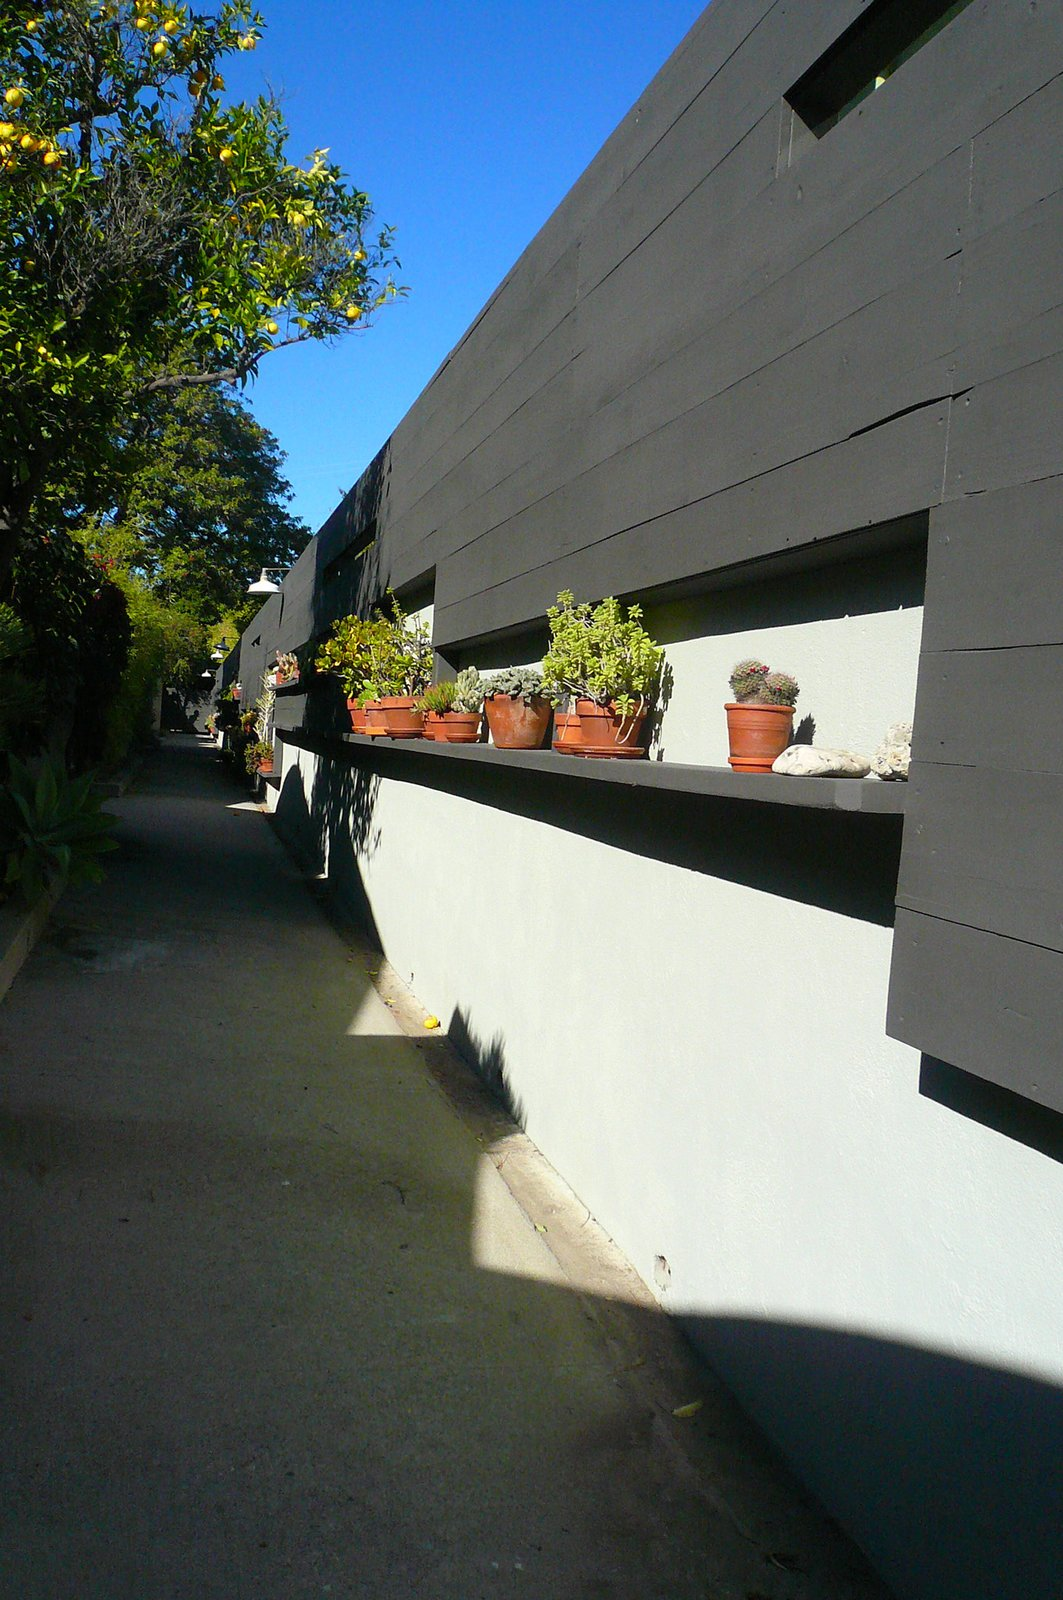 The front gate was closed but we entered anyway. Bestor is a big fan of the plant wall along the main walkway, which ties the various front entrances together and lends some visual detail to an otherwise simple form.  An Architect's Guide to Silver Lake by Jaime Gillin